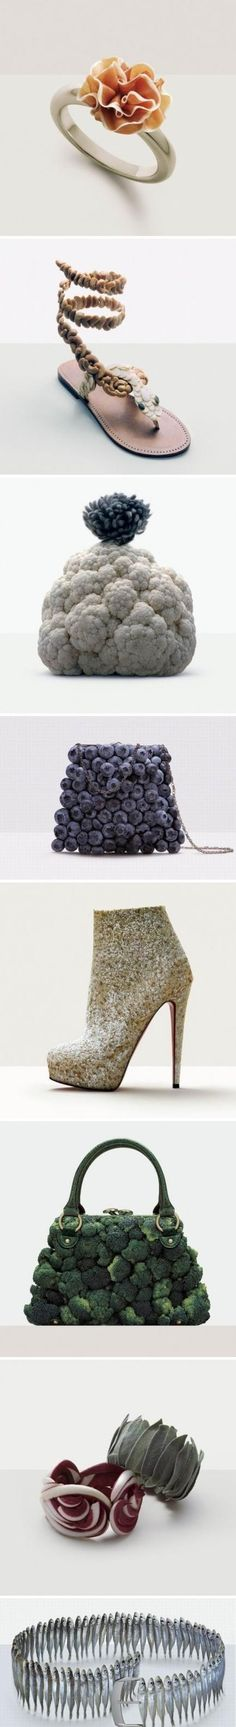 Fashion food material works